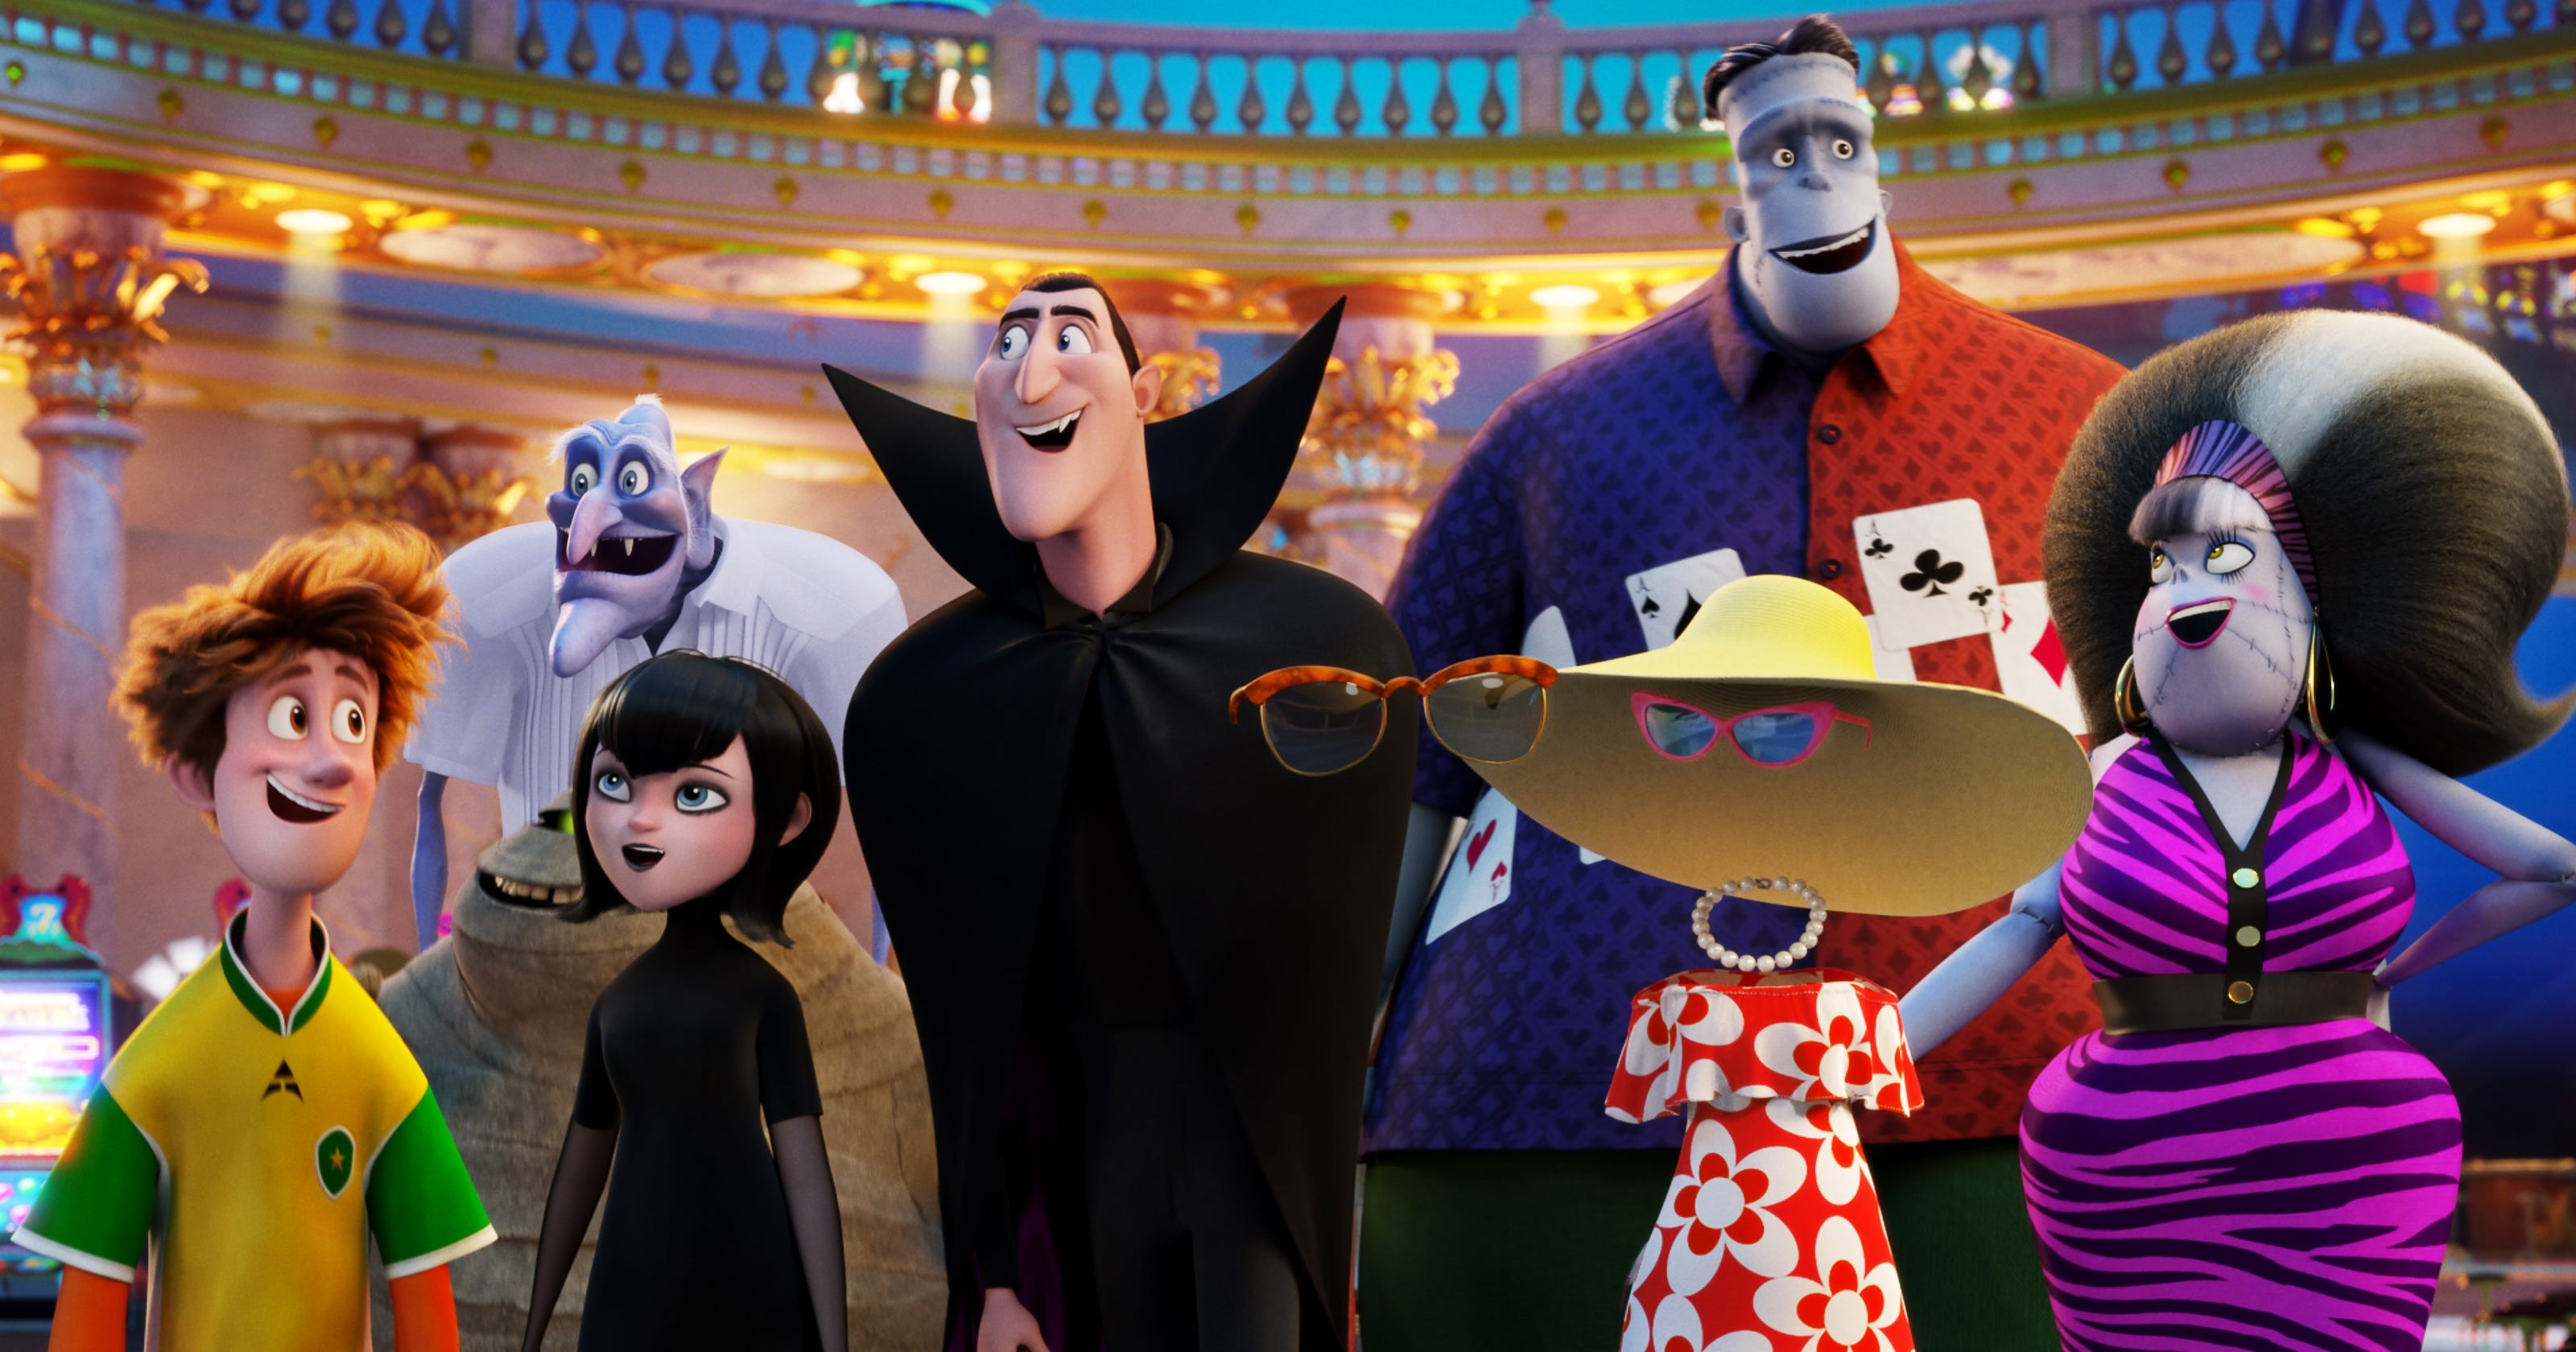 This is an image of Accomplished Hotel Transylvania Pictures